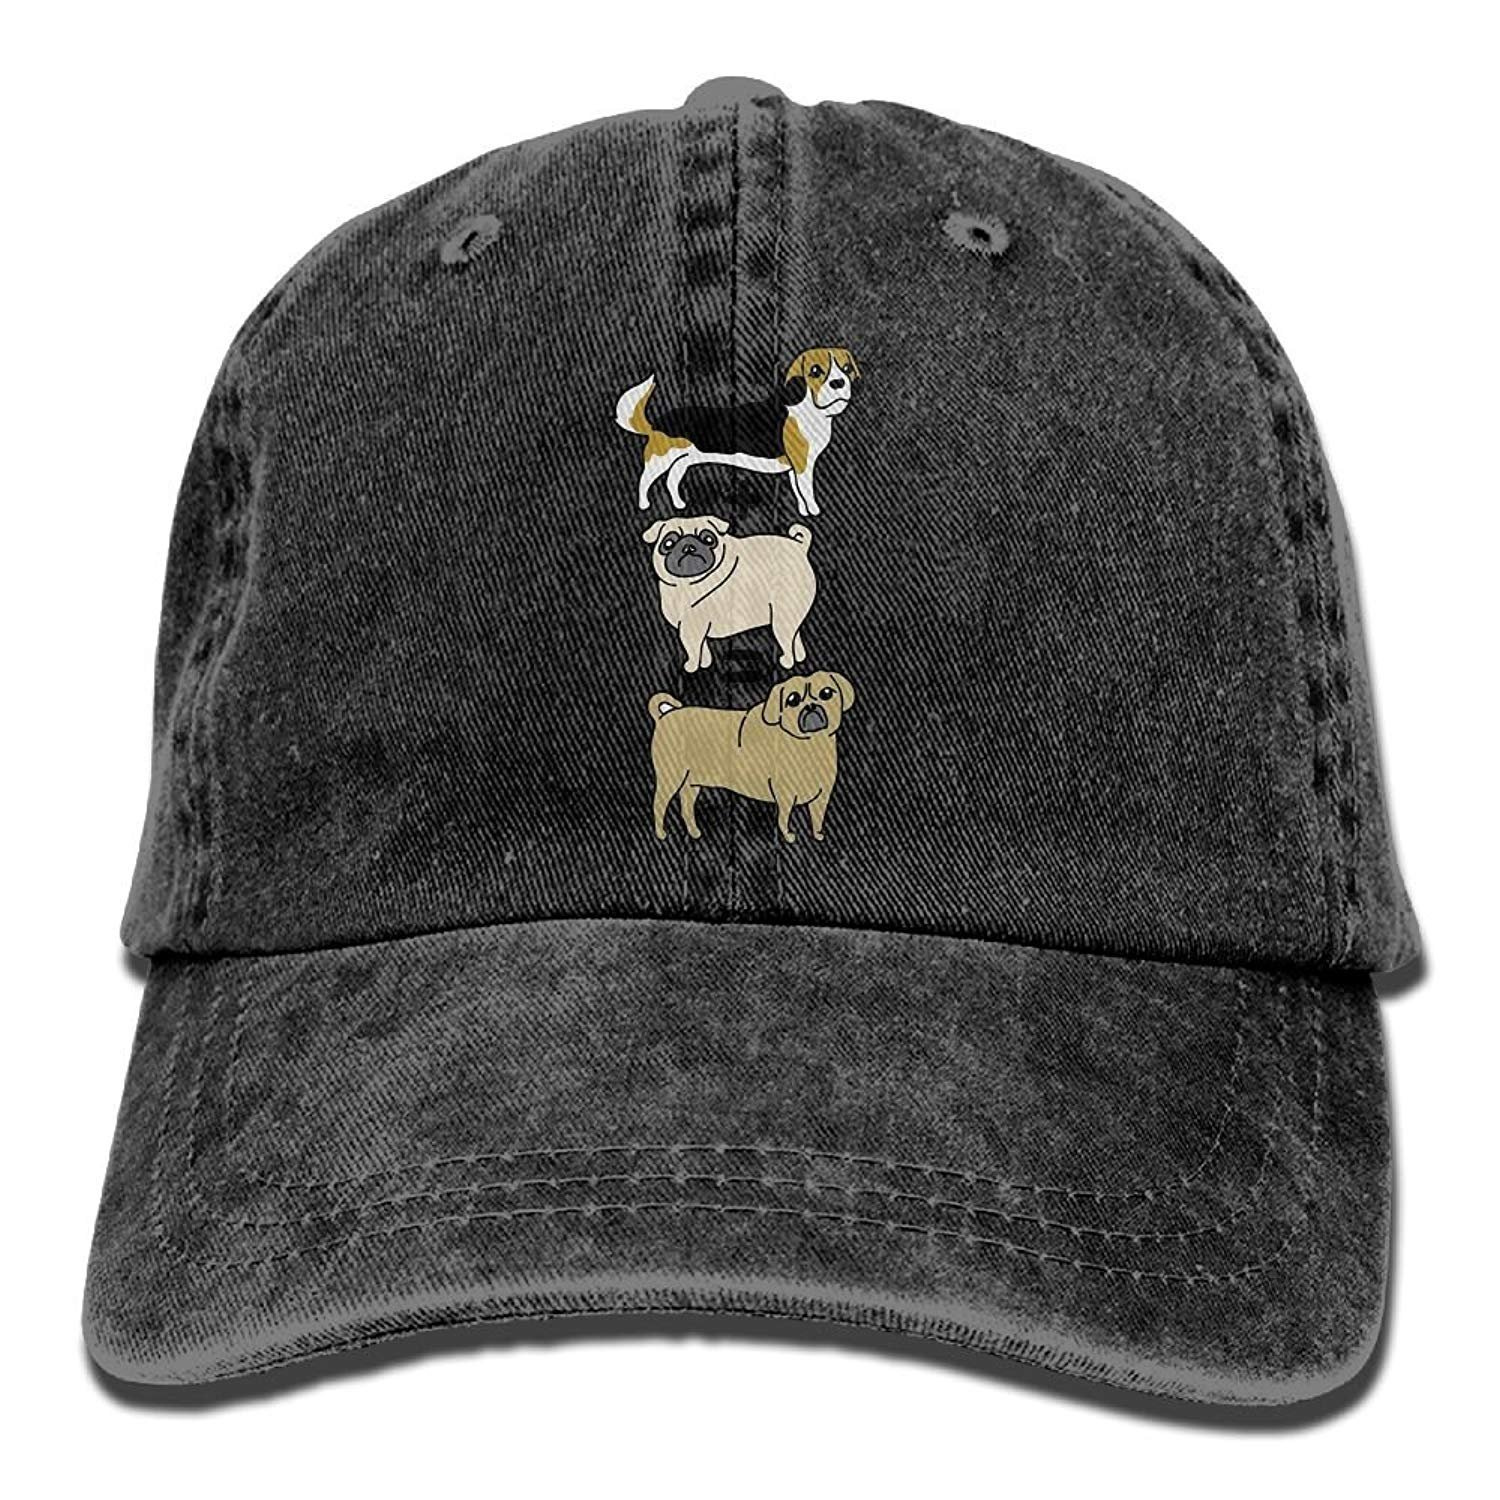 Puggle Equation Adult Cowboy Hat Baseball Cap Adjustable Athletic Personalized Sports Hat for Men and Women JTRVW Cowboy Hats